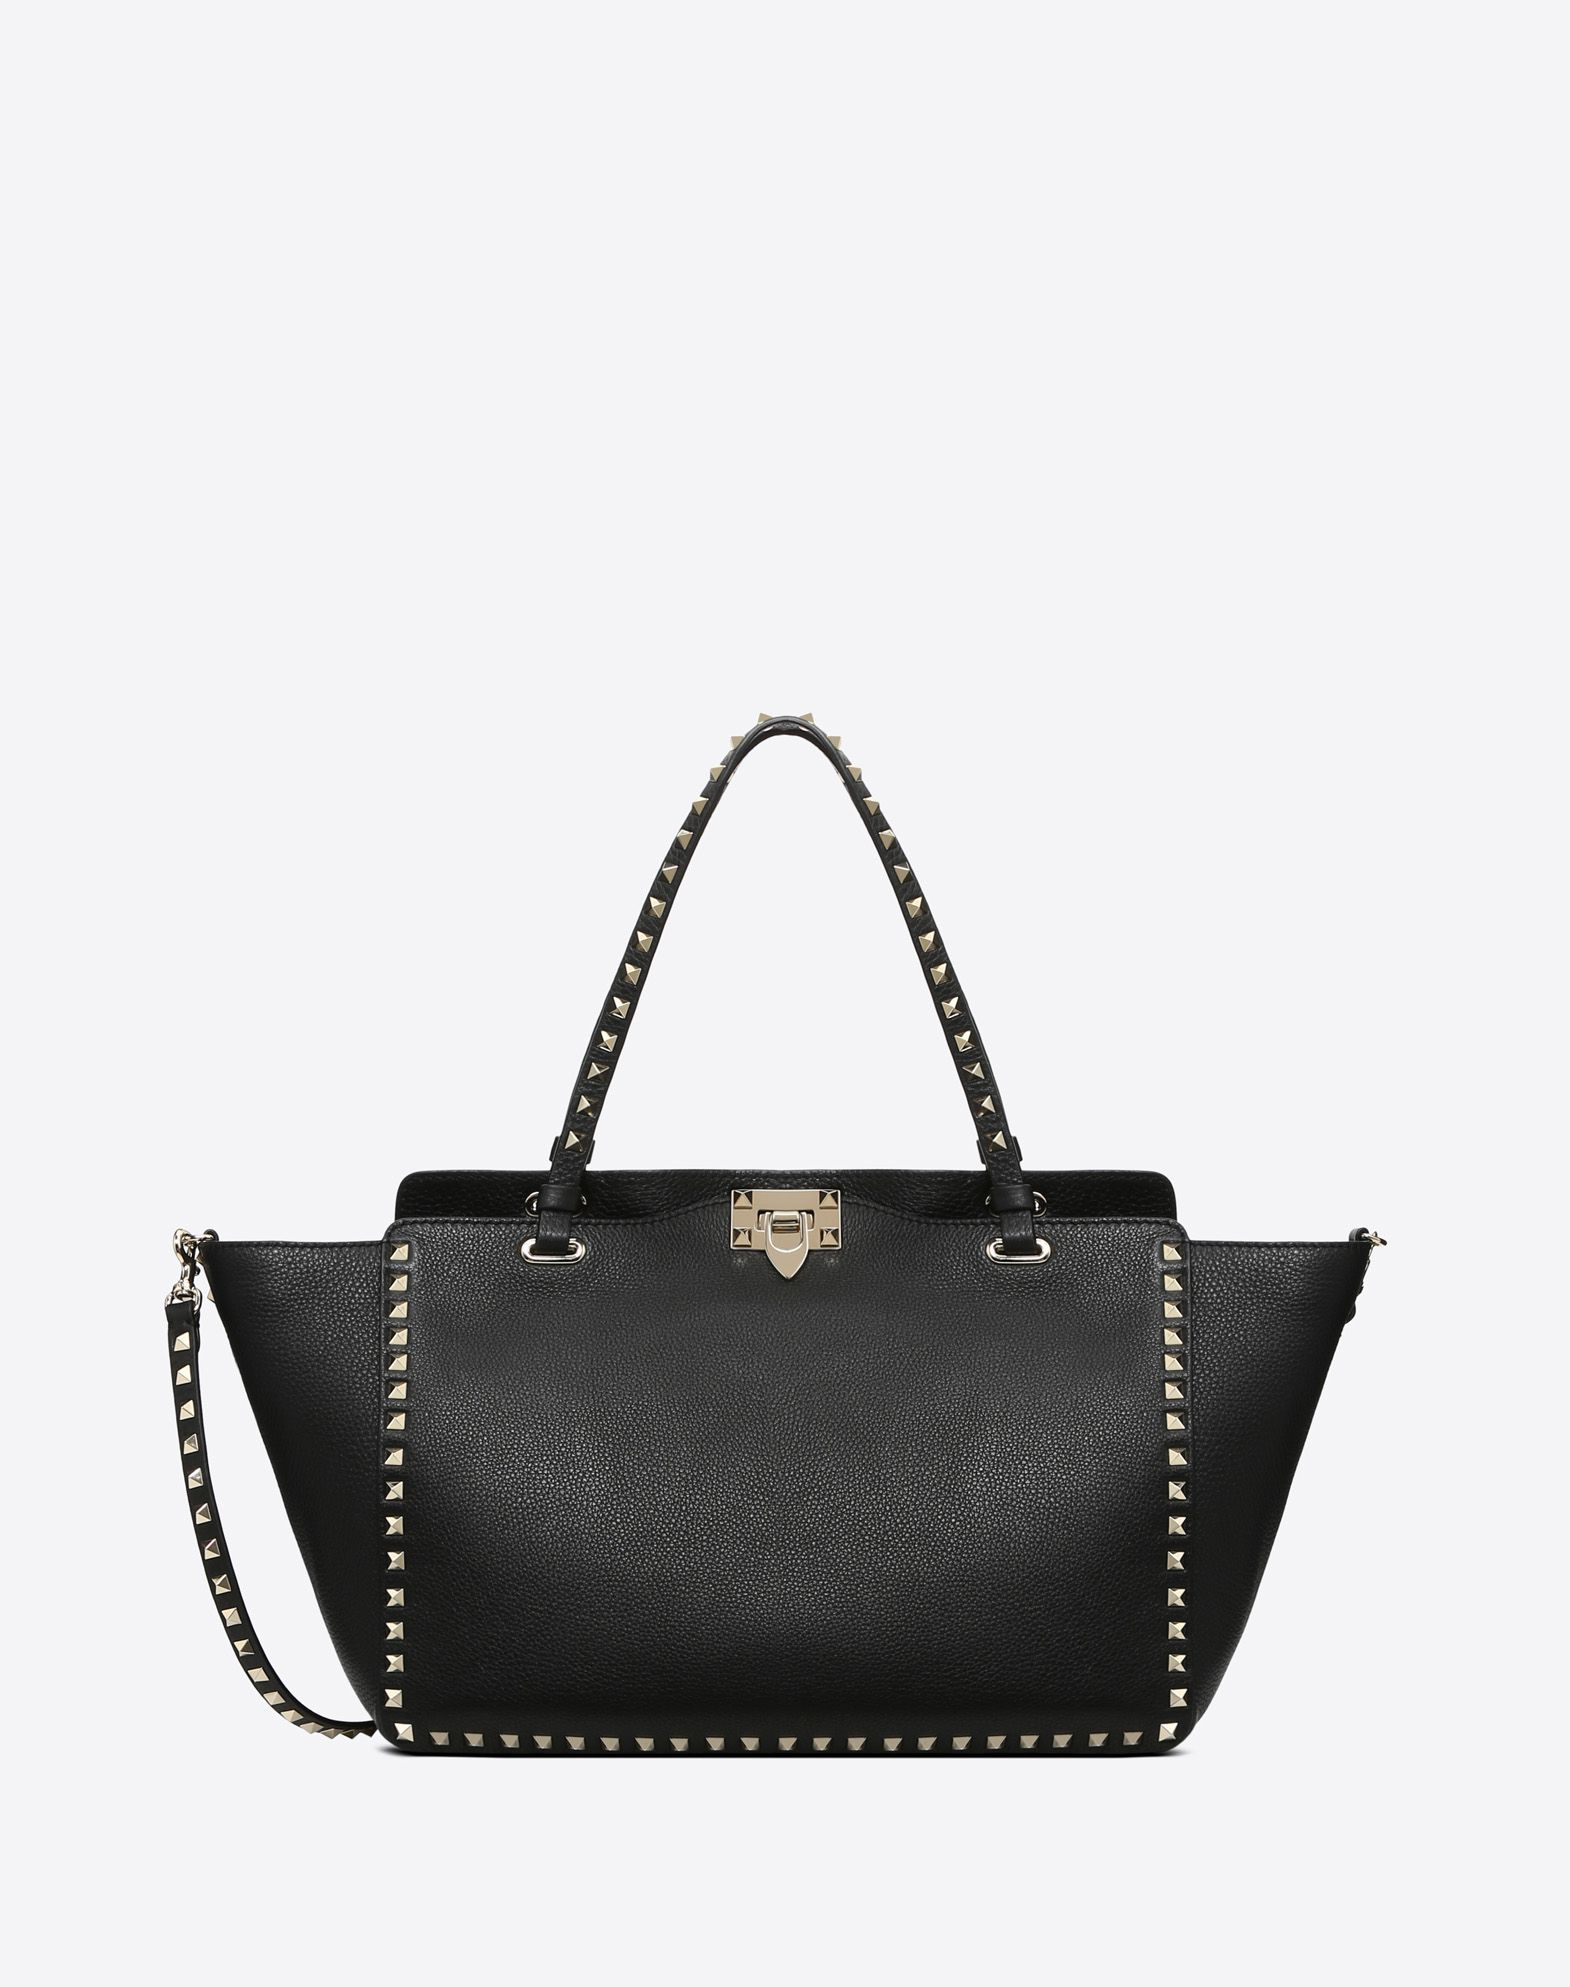 dbcdd40420 Large Rockstud Tote for Woman | Valentino Online Boutique 2695 ...